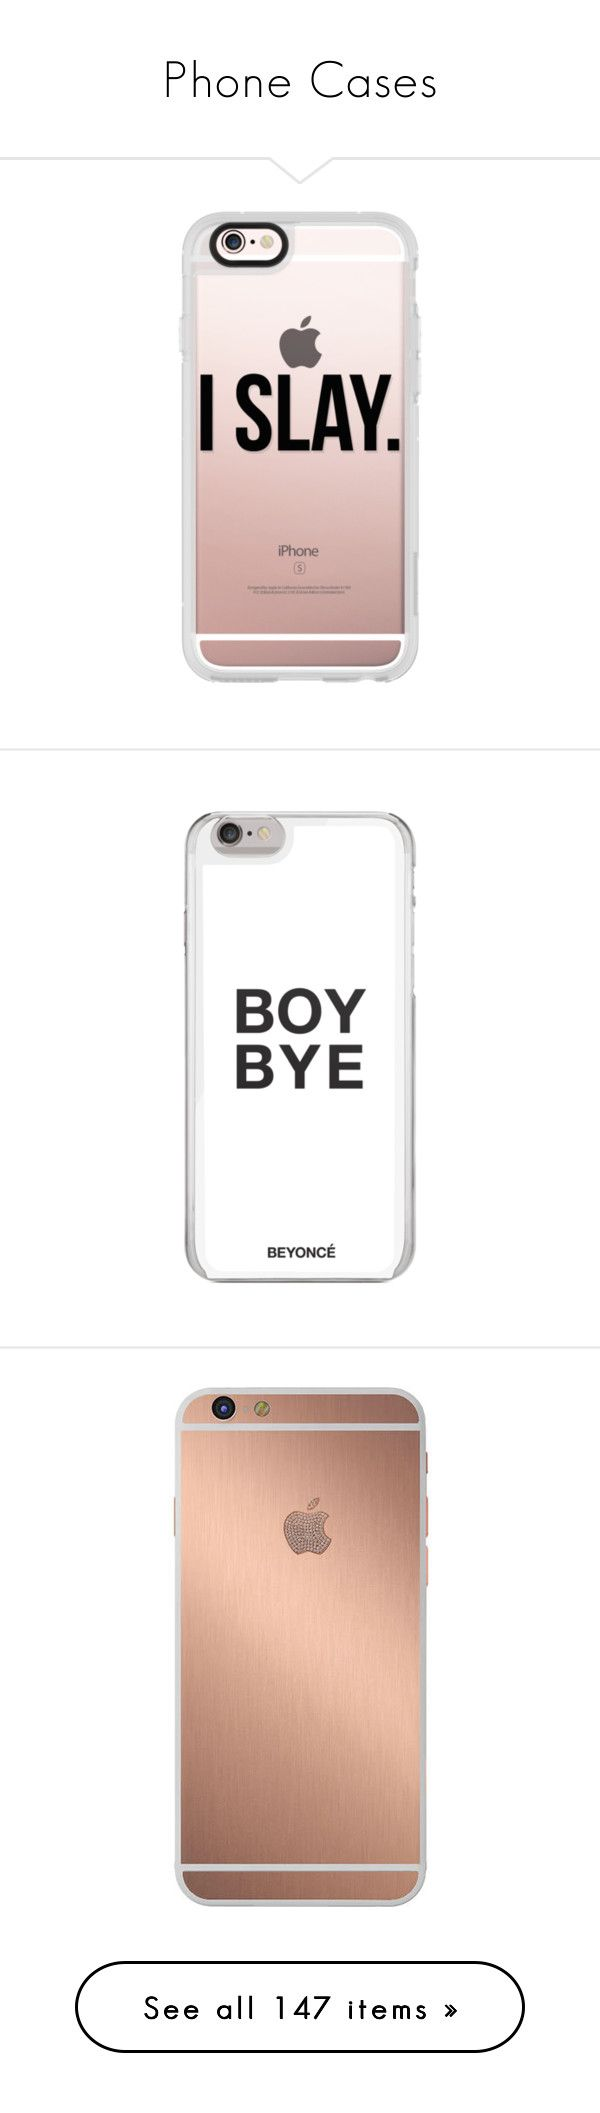 """Phone Cases"" by power-beauty ❤ liked on Polyvore featuring accessories, tech accessories, phone cases, phone, cases, electronics, iphone case, iphone hard case, iphone cases and iphone cover case"